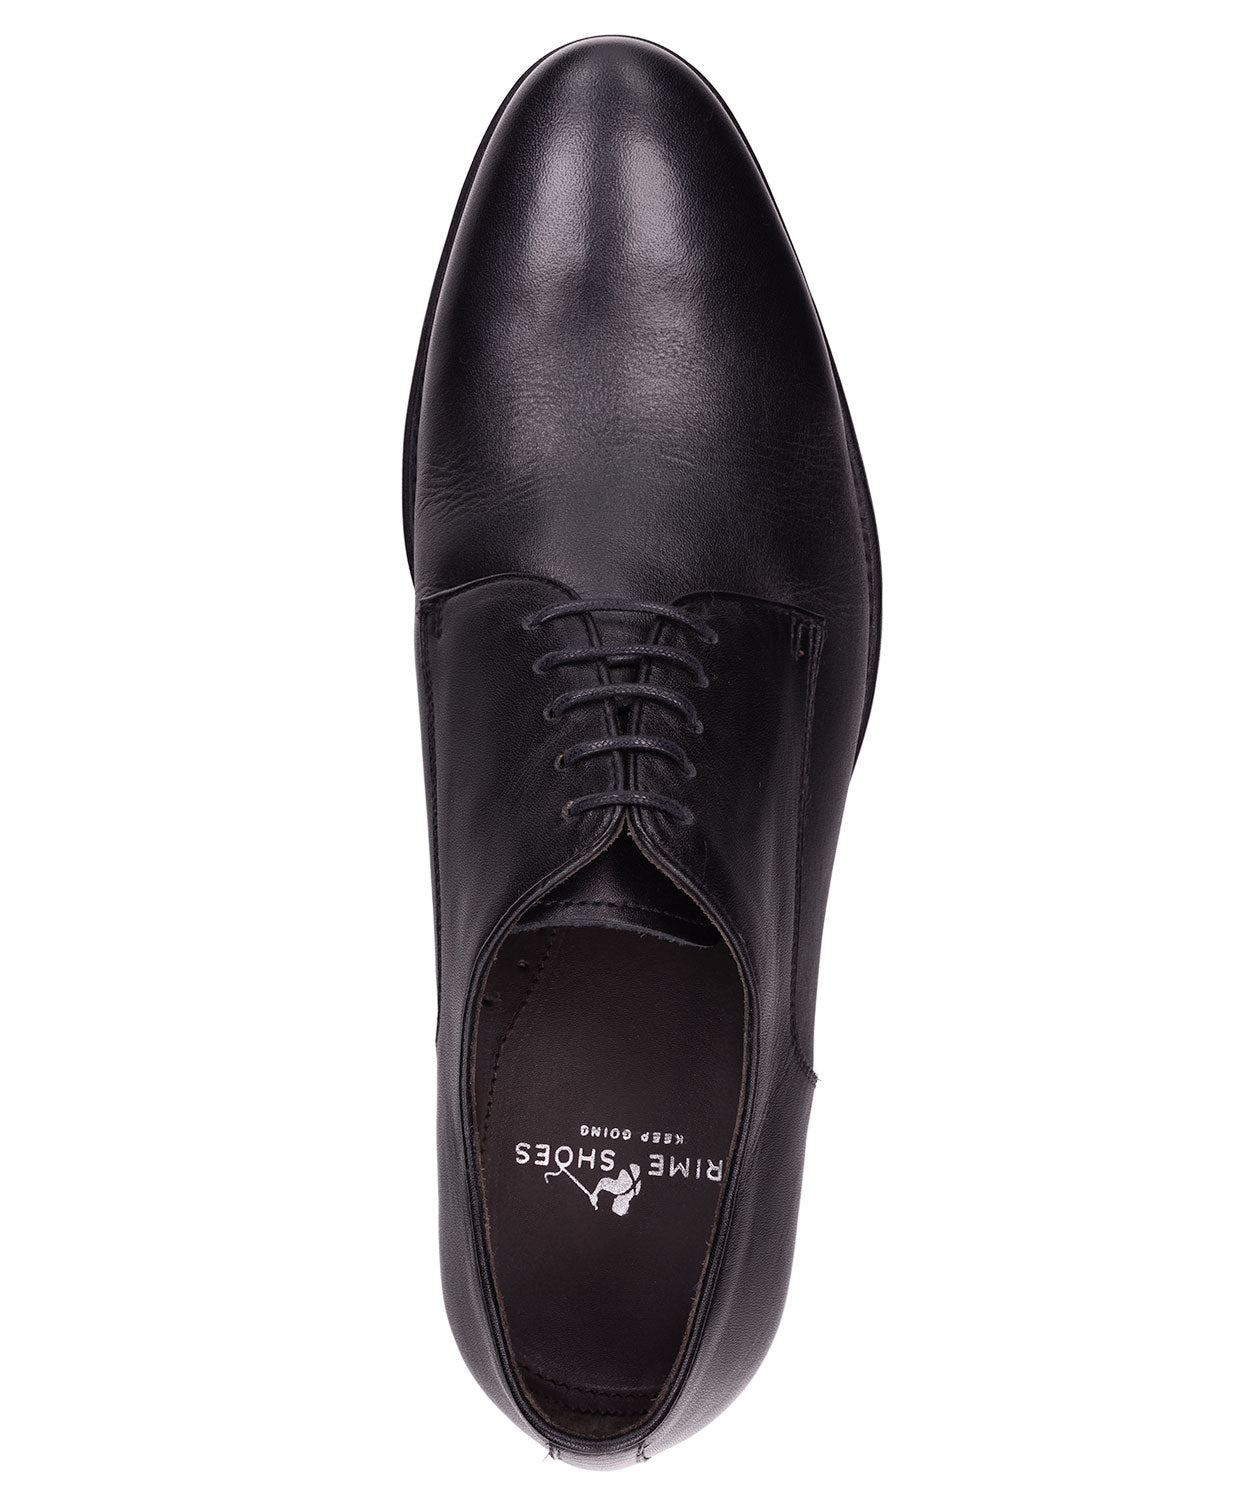 Roma Black Lace-up Dress Shoe